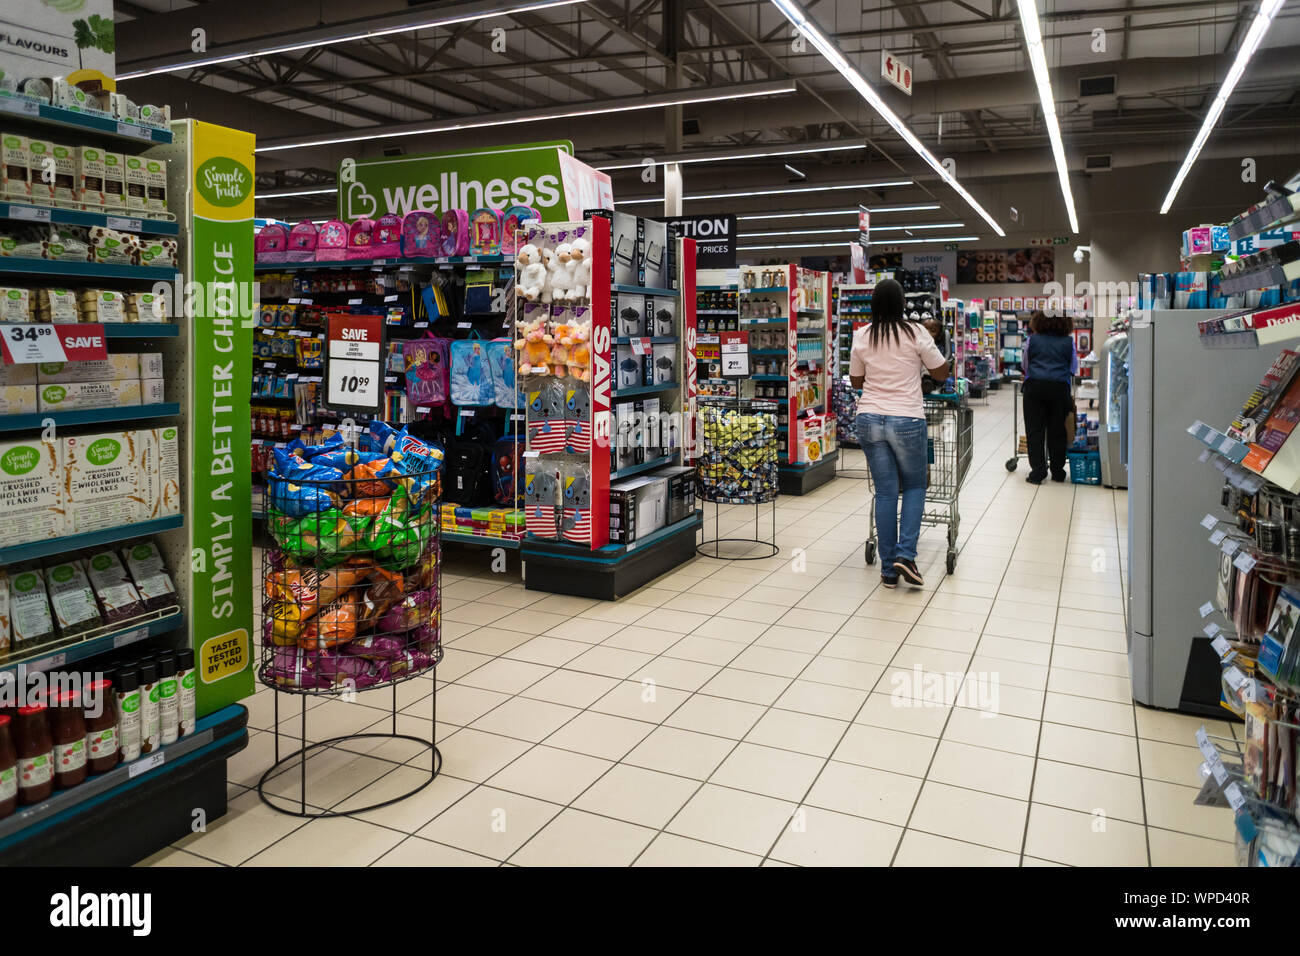 interior of a supermarket or store in Mpumalanga, South Africa with shoppers and aisles filled with products or items for sale Stock Photo